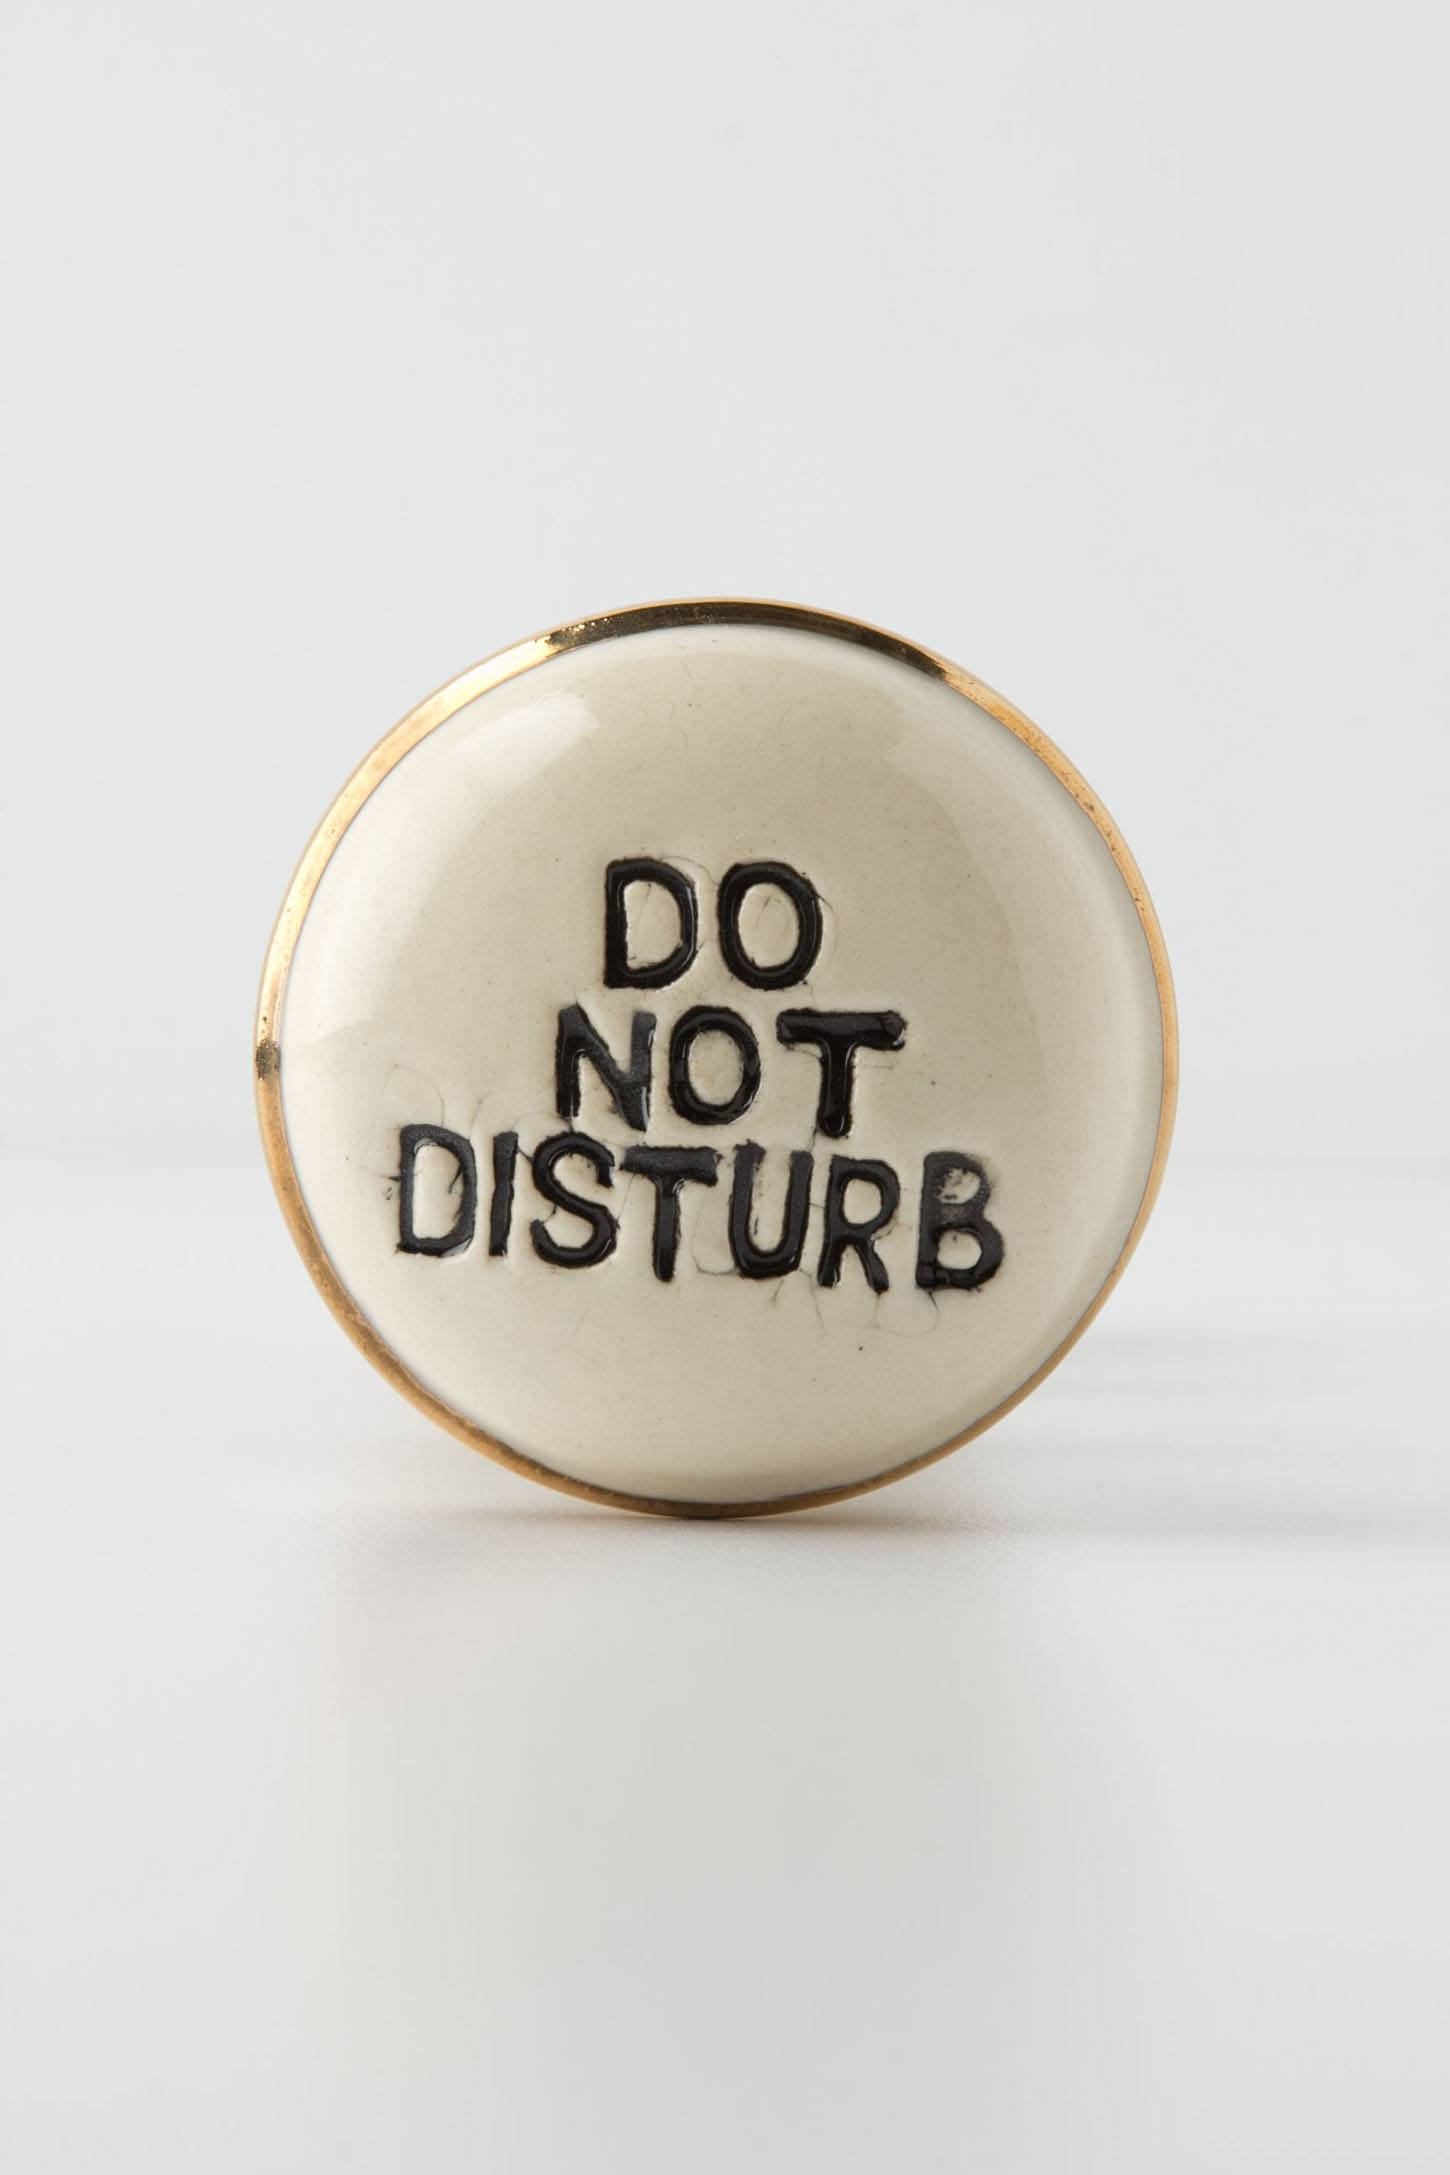 Slide View: 2: Do Not Disturb Doorknob